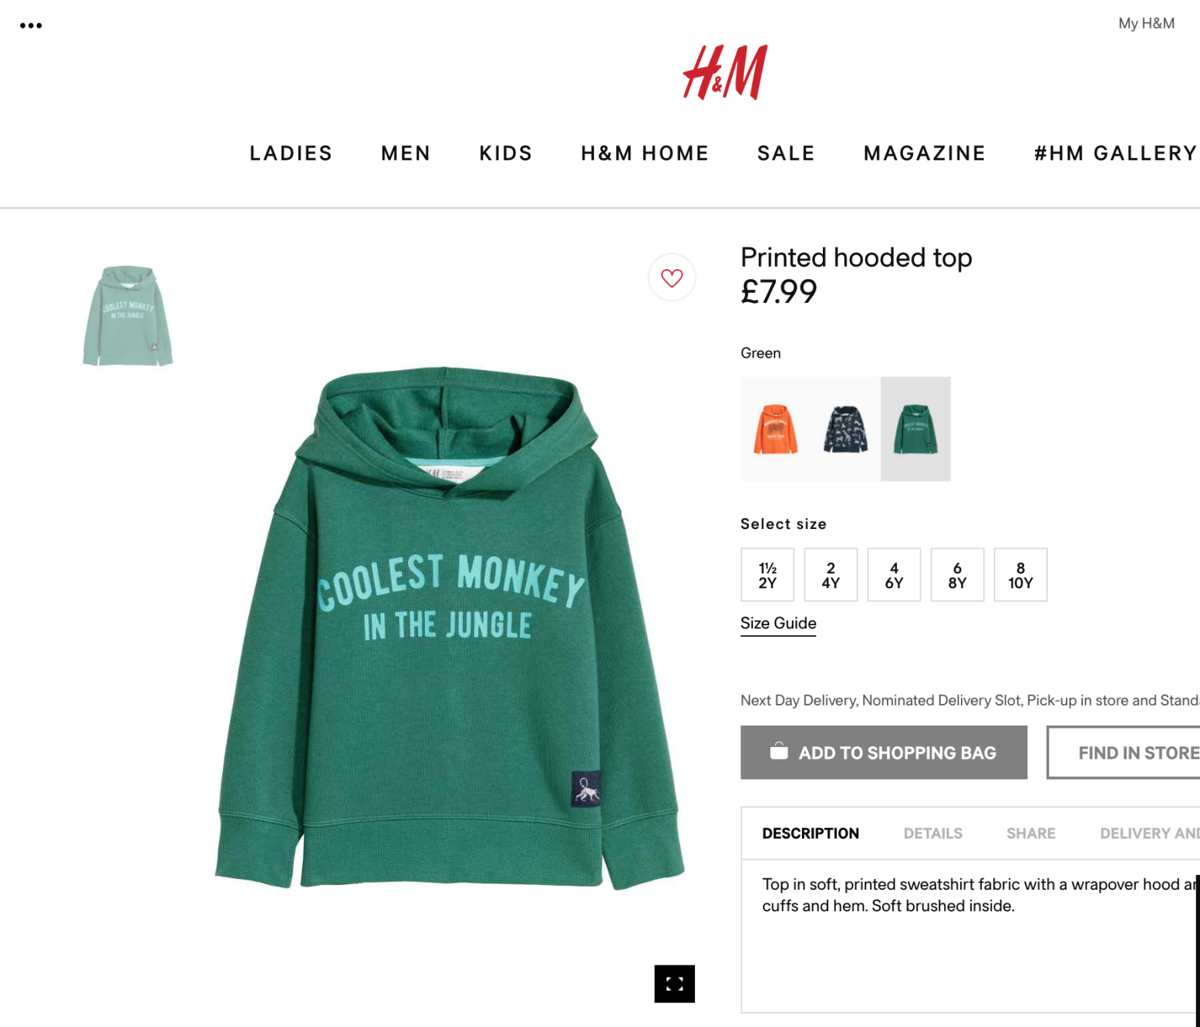 Hm Pulls Online Ad With Black Boy Wearing Monkey Shirt News